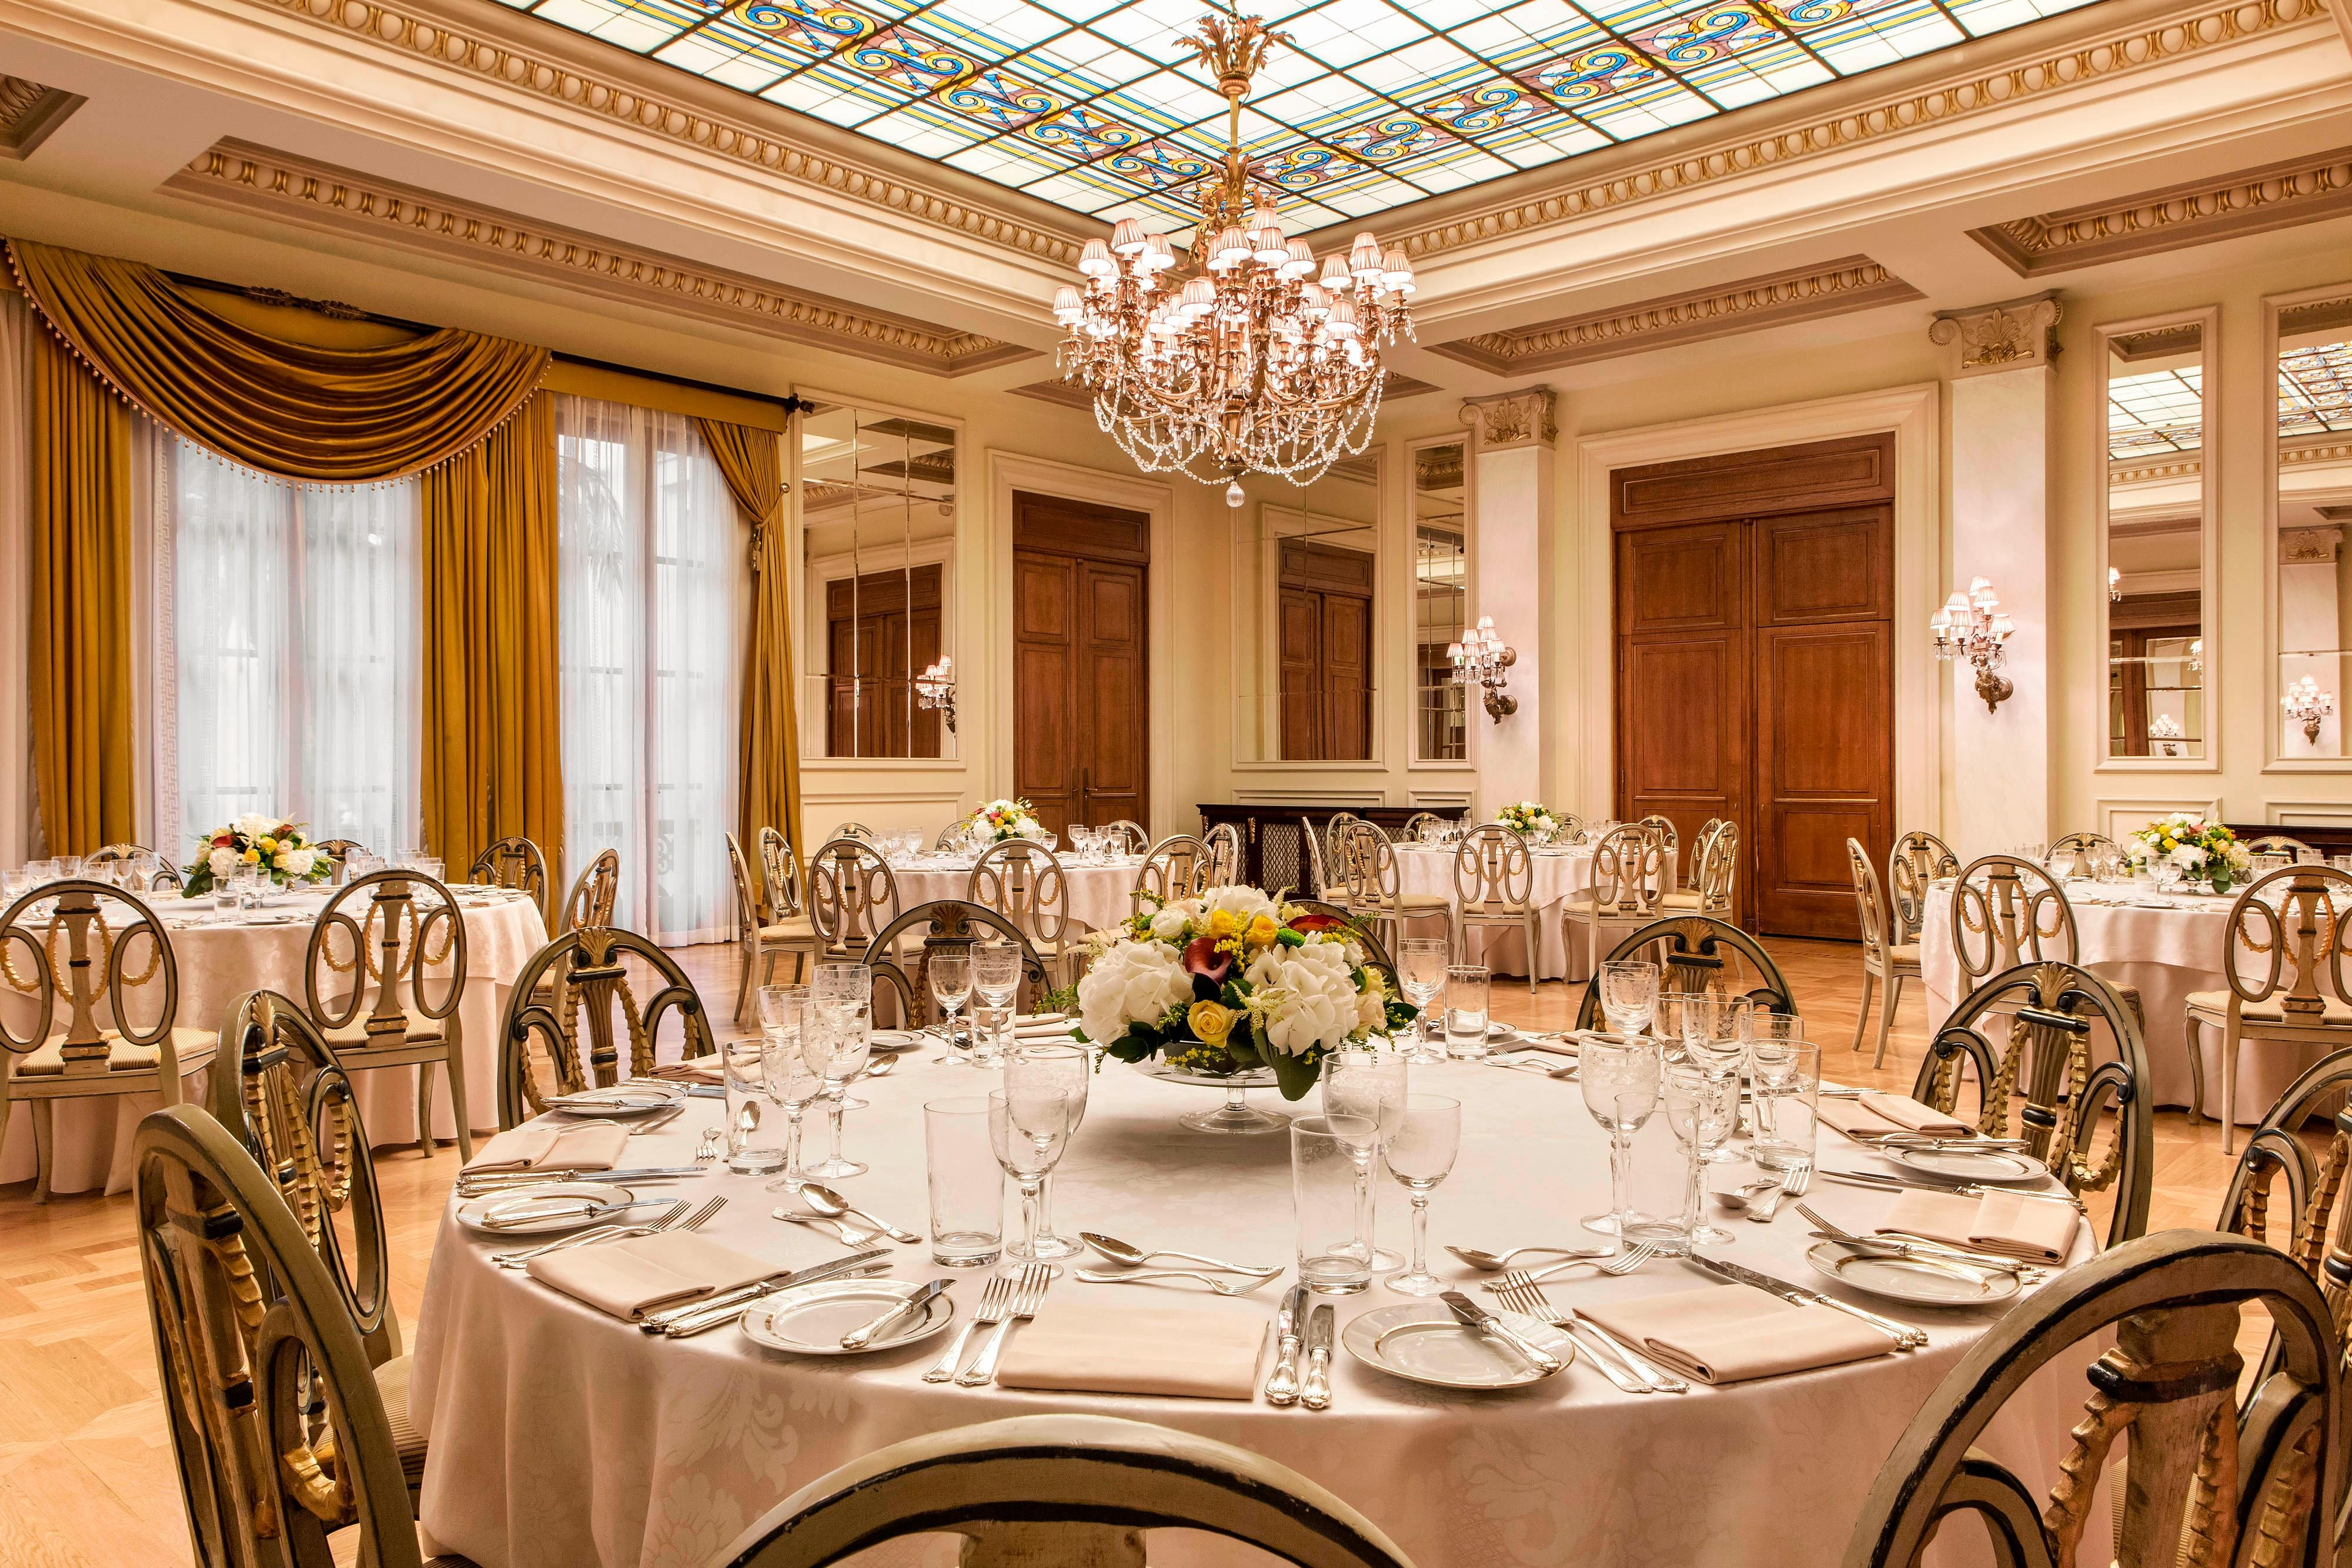 Royal Room - Banquet